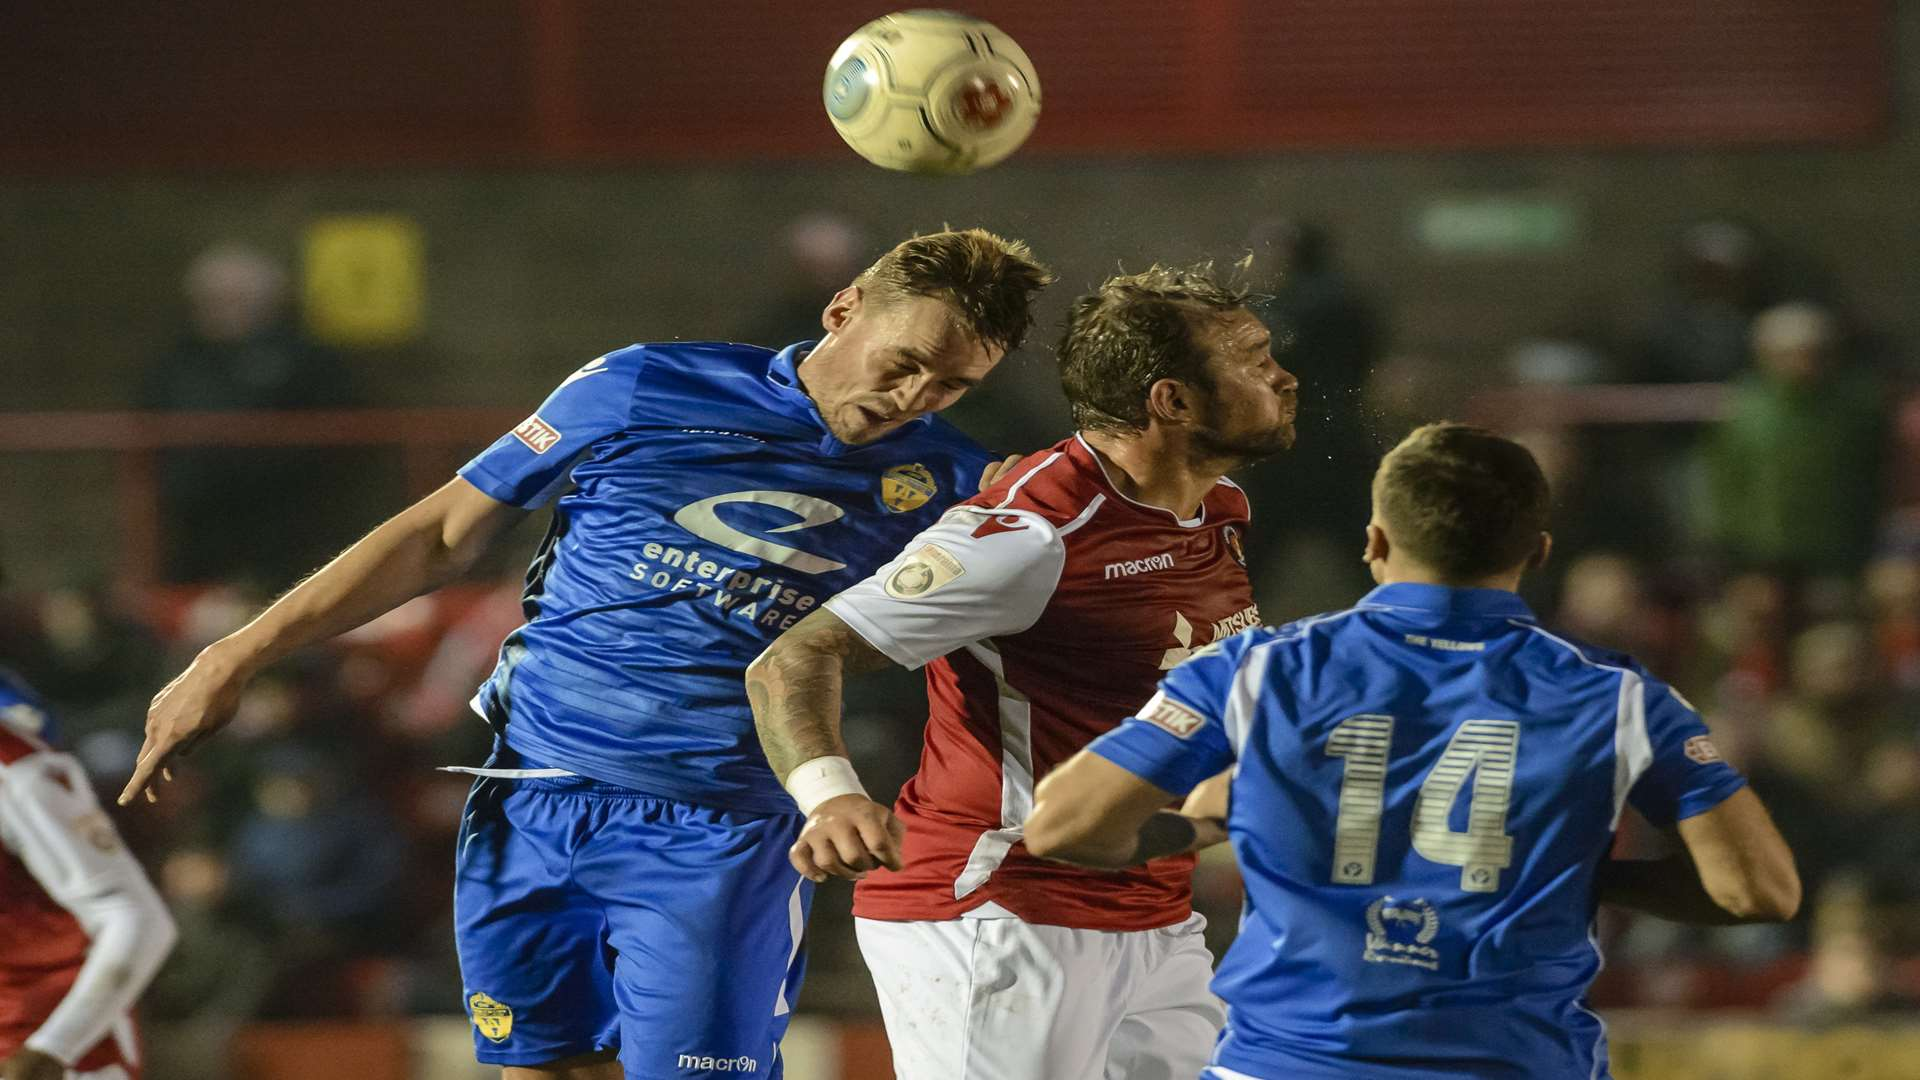 Danny Kedwell up for a header against Warrington Picture: Andy Payton